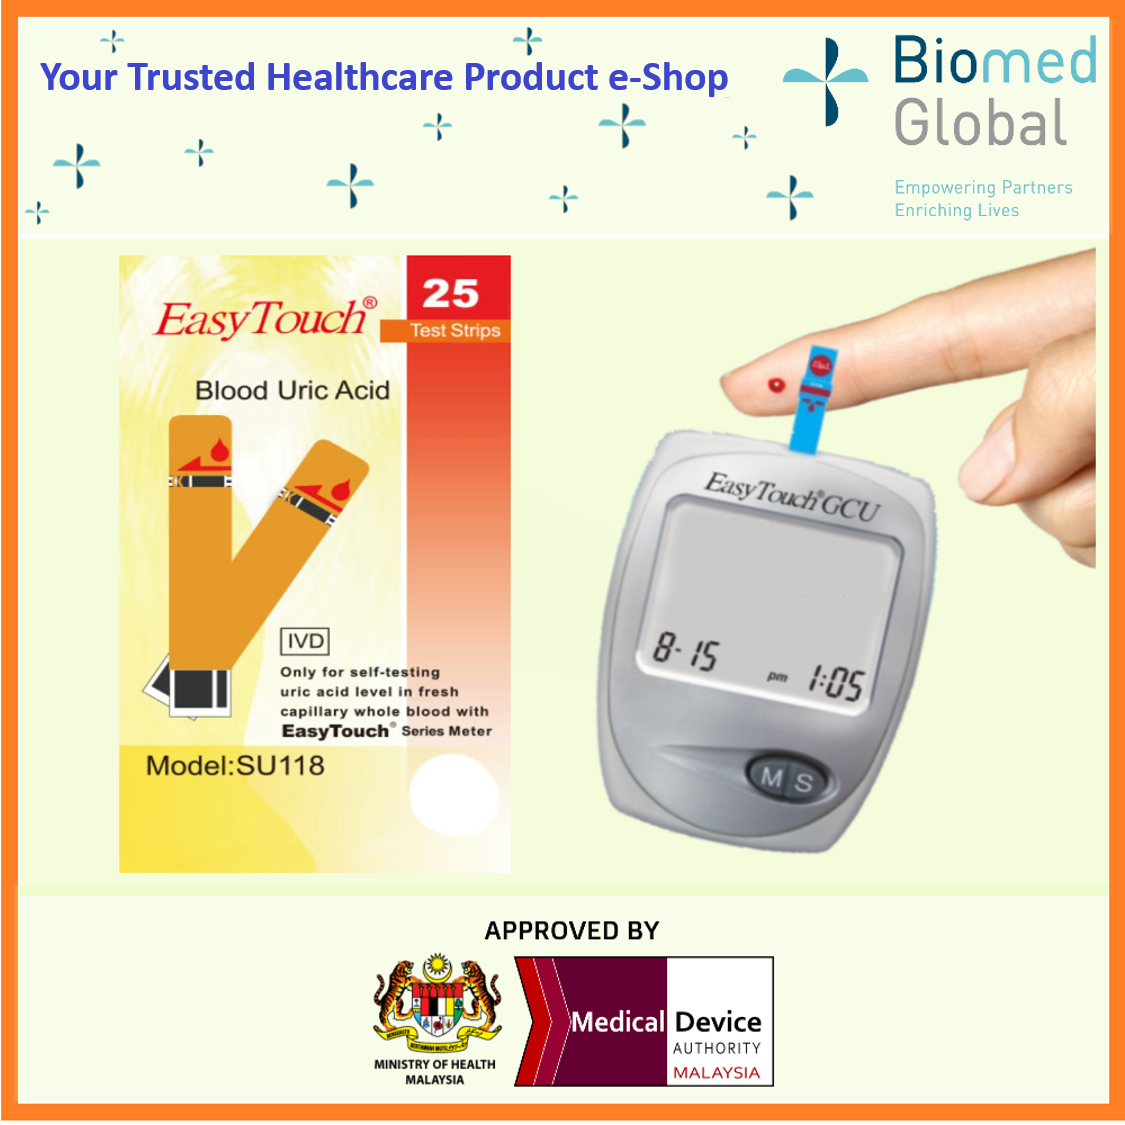 EZ2BUY PACKAGE - EasyTouch GCU 3-in-1 Blood Glucose, Cholesterol and Uric Acid Meter (Approved By Malaysia Medical Device Authority), BUNDLE with 50 Test Strips Each for Cholesterol, glucose &Uric Acid Test